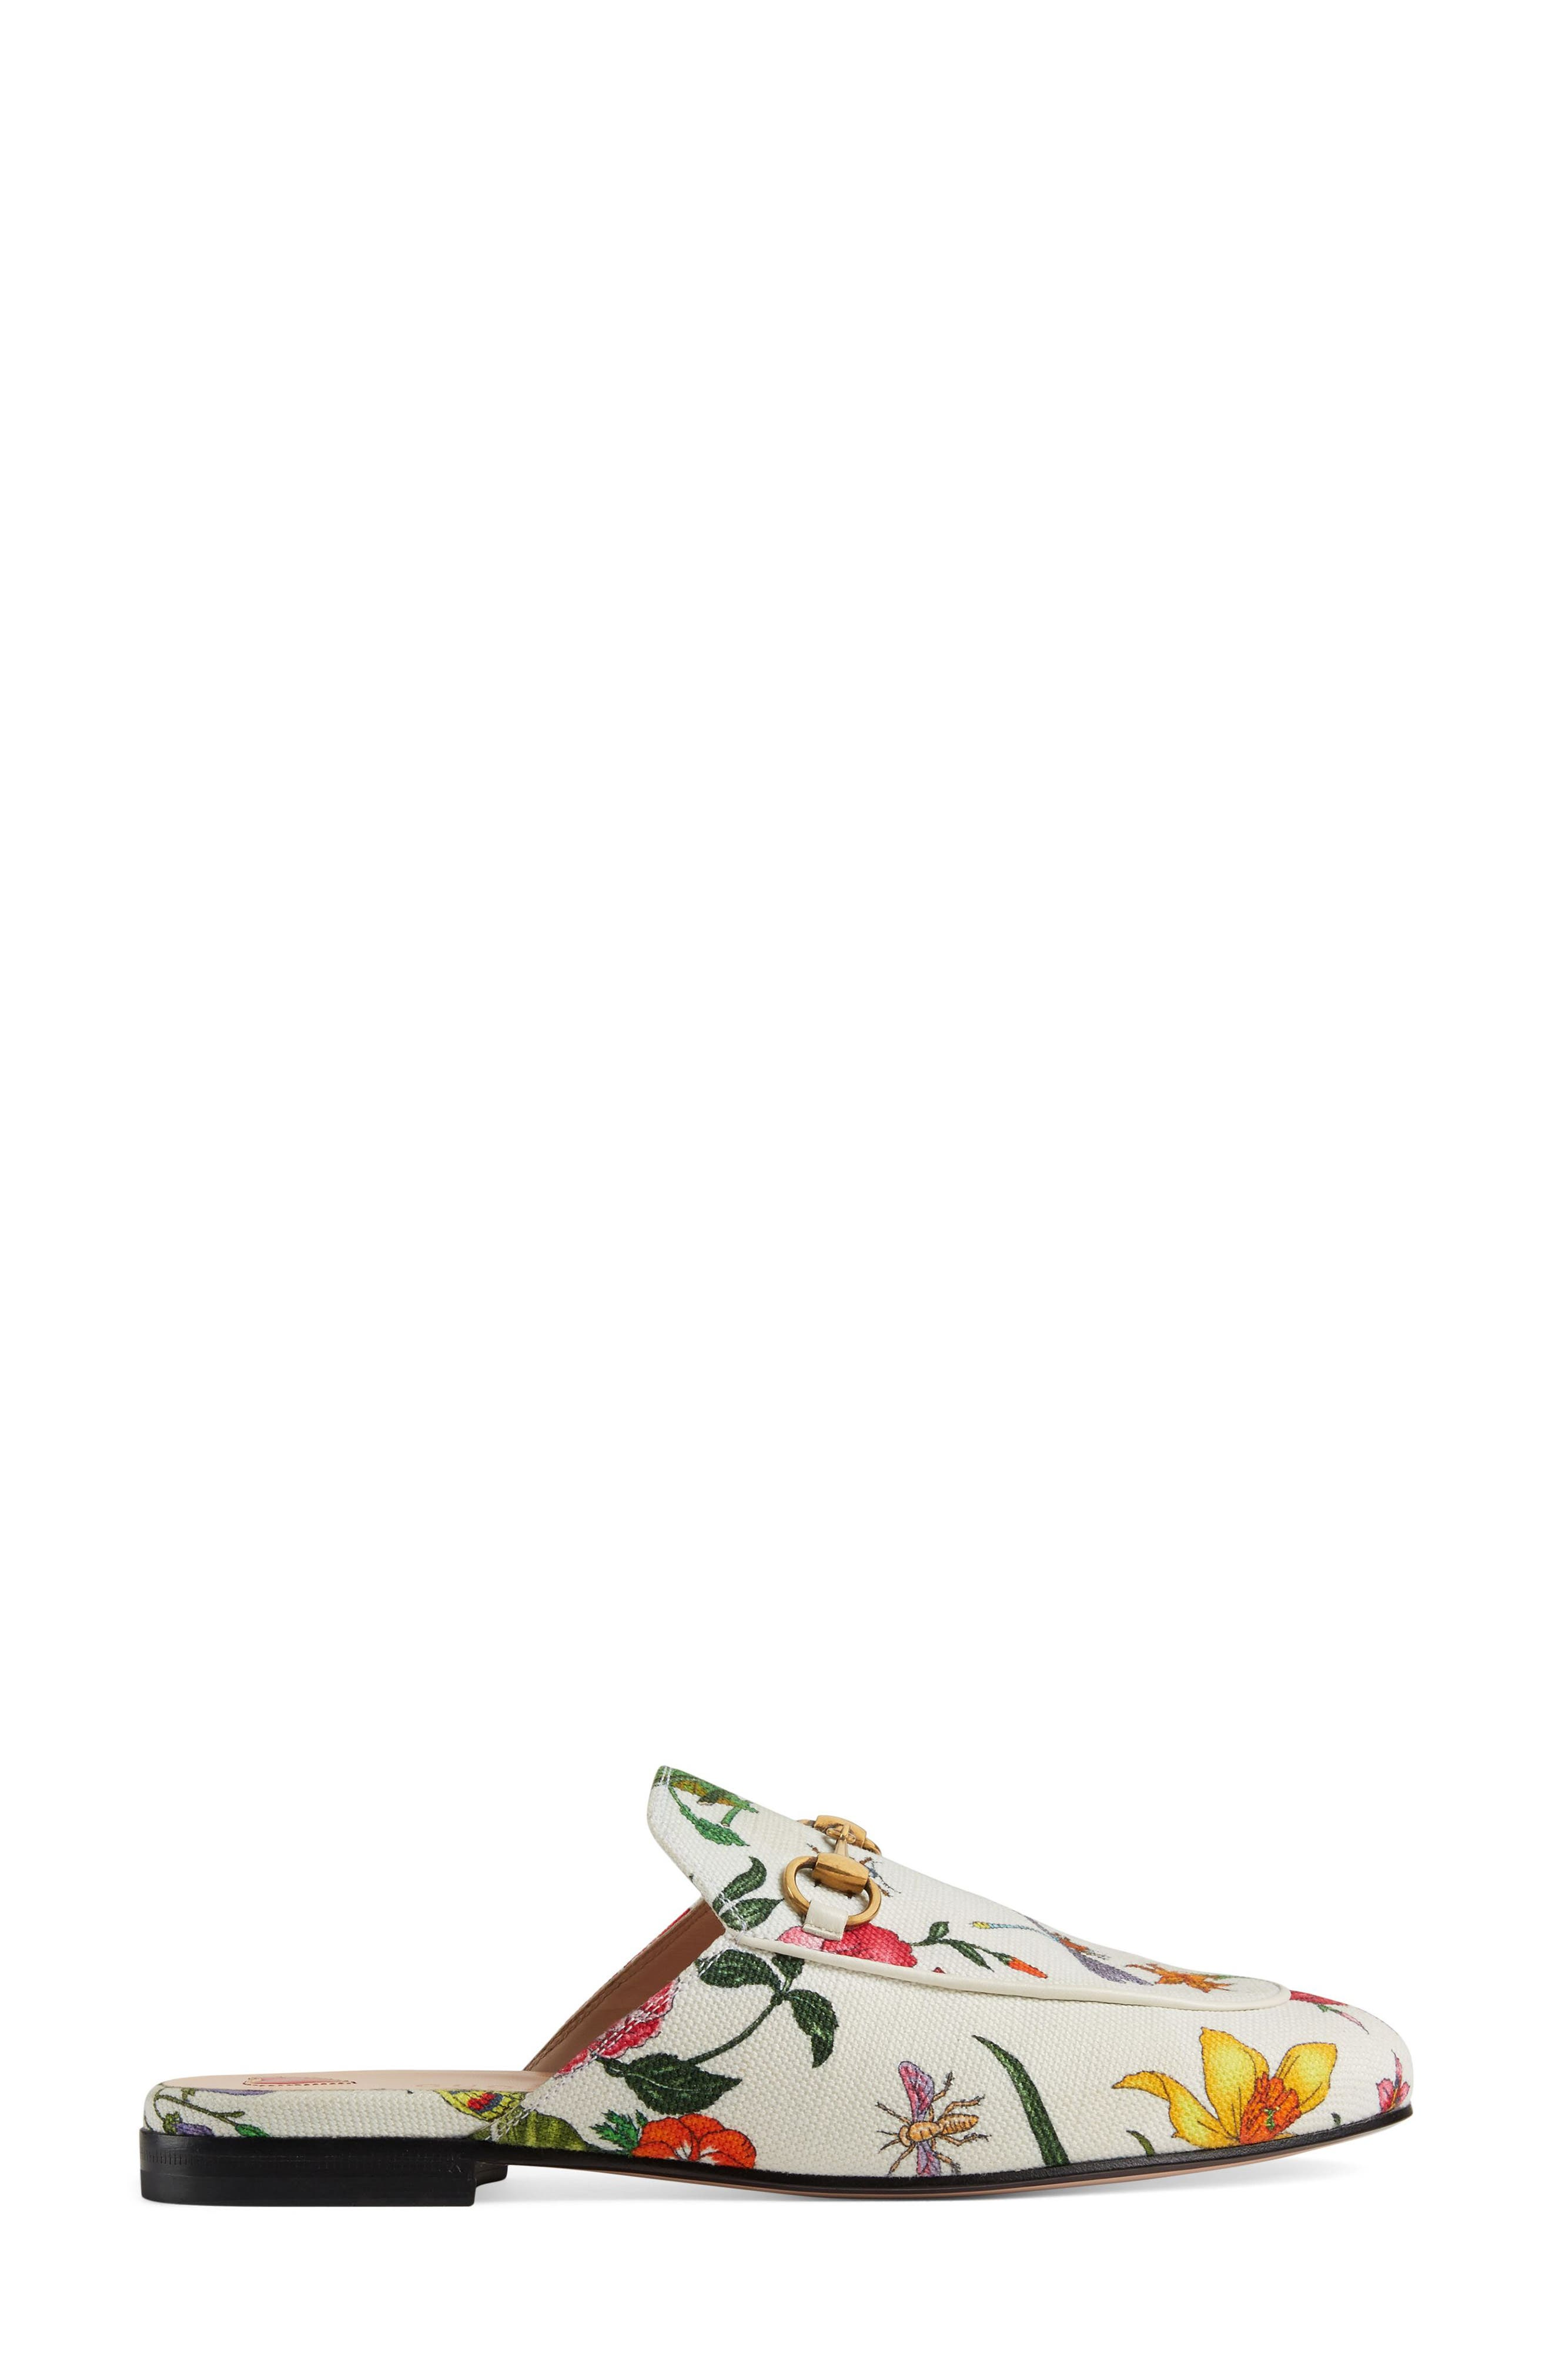 GUCCI, Princetown Loafer Mule, Alternate thumbnail 2, color, WHITE FLORAL